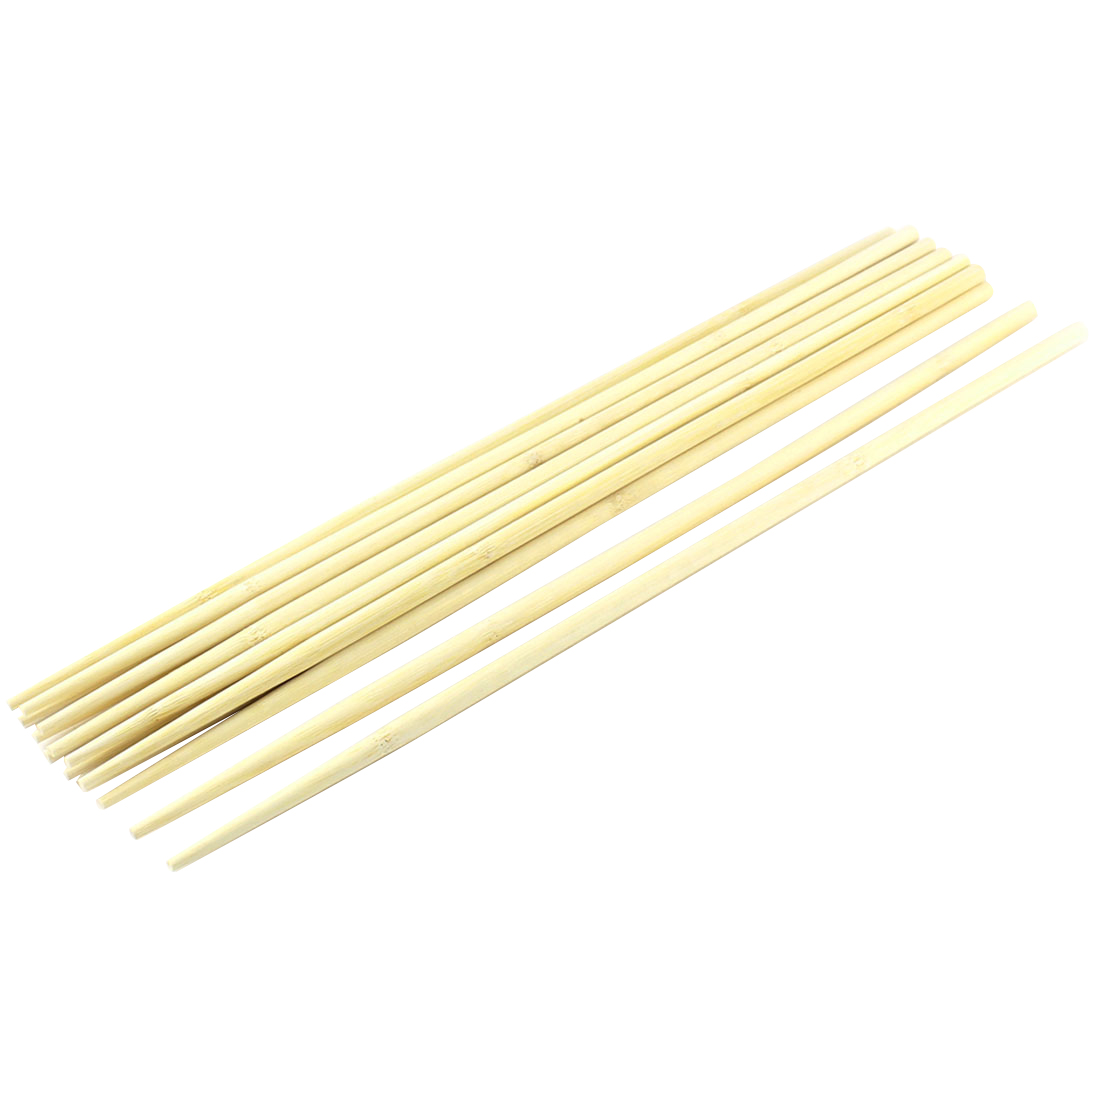 Kitchen Hot Pot Cooking Wooden Noodles Chopsticks 45cm Length 7 Pairs